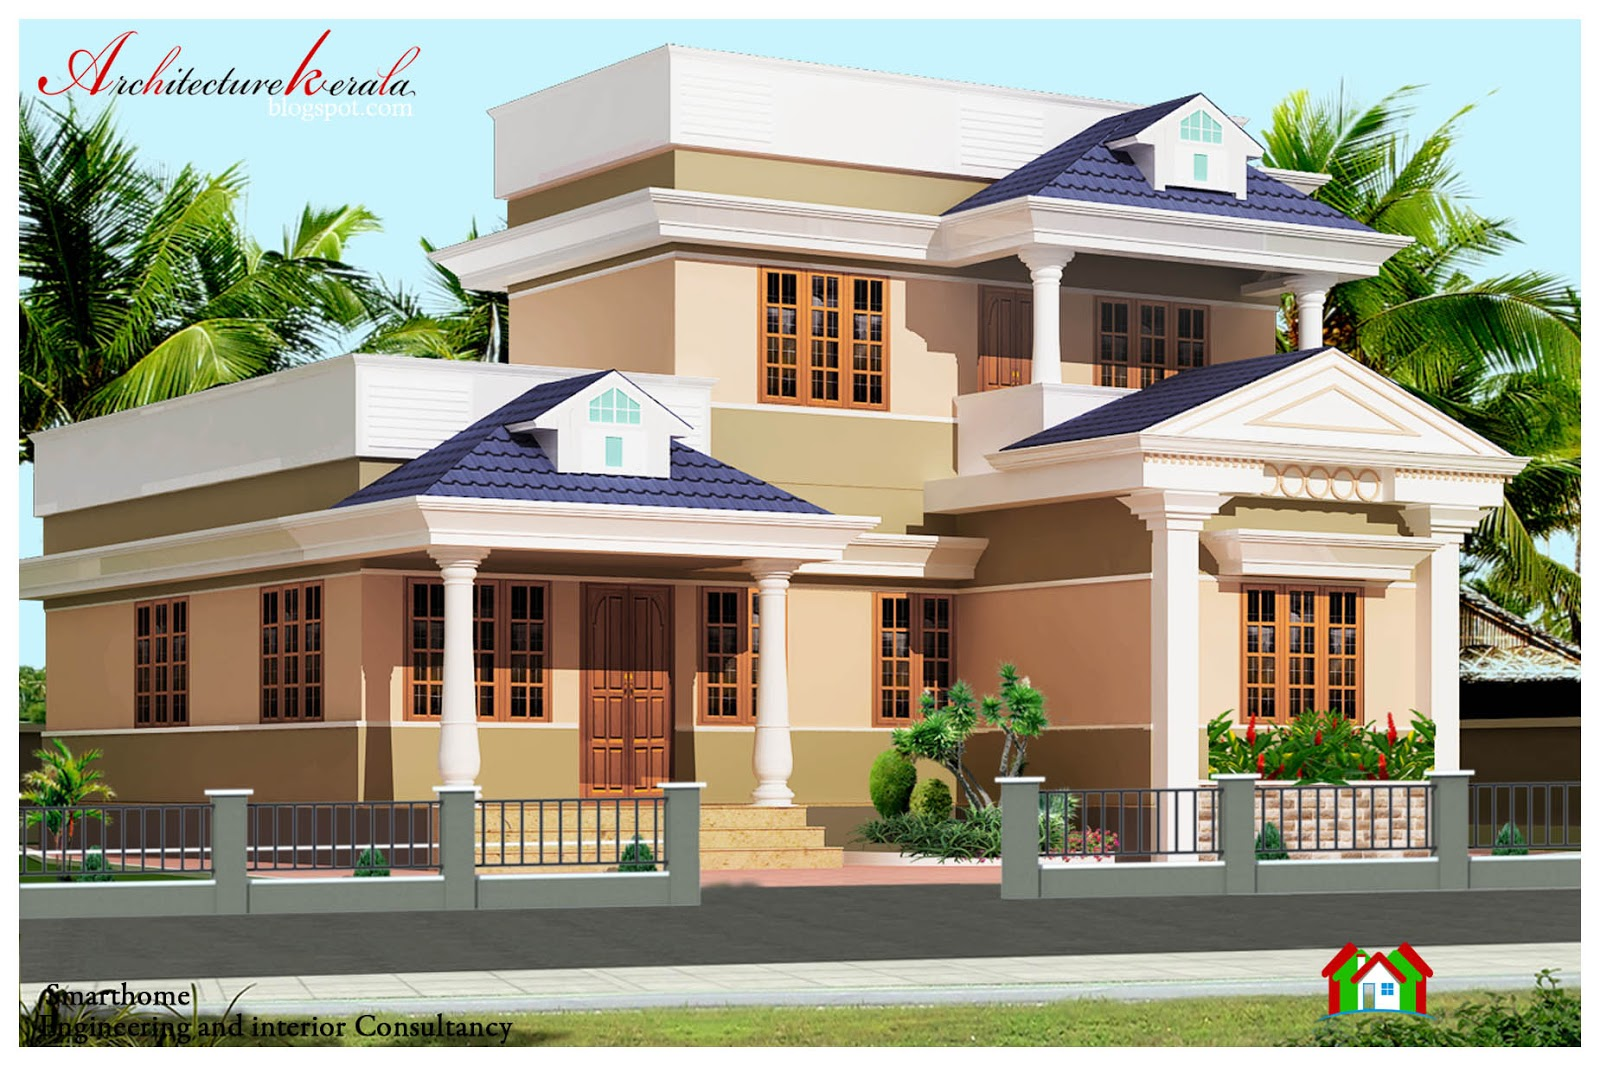 Architecture kerala 1000 sq ft kerala style house plan for House plan design kerala style